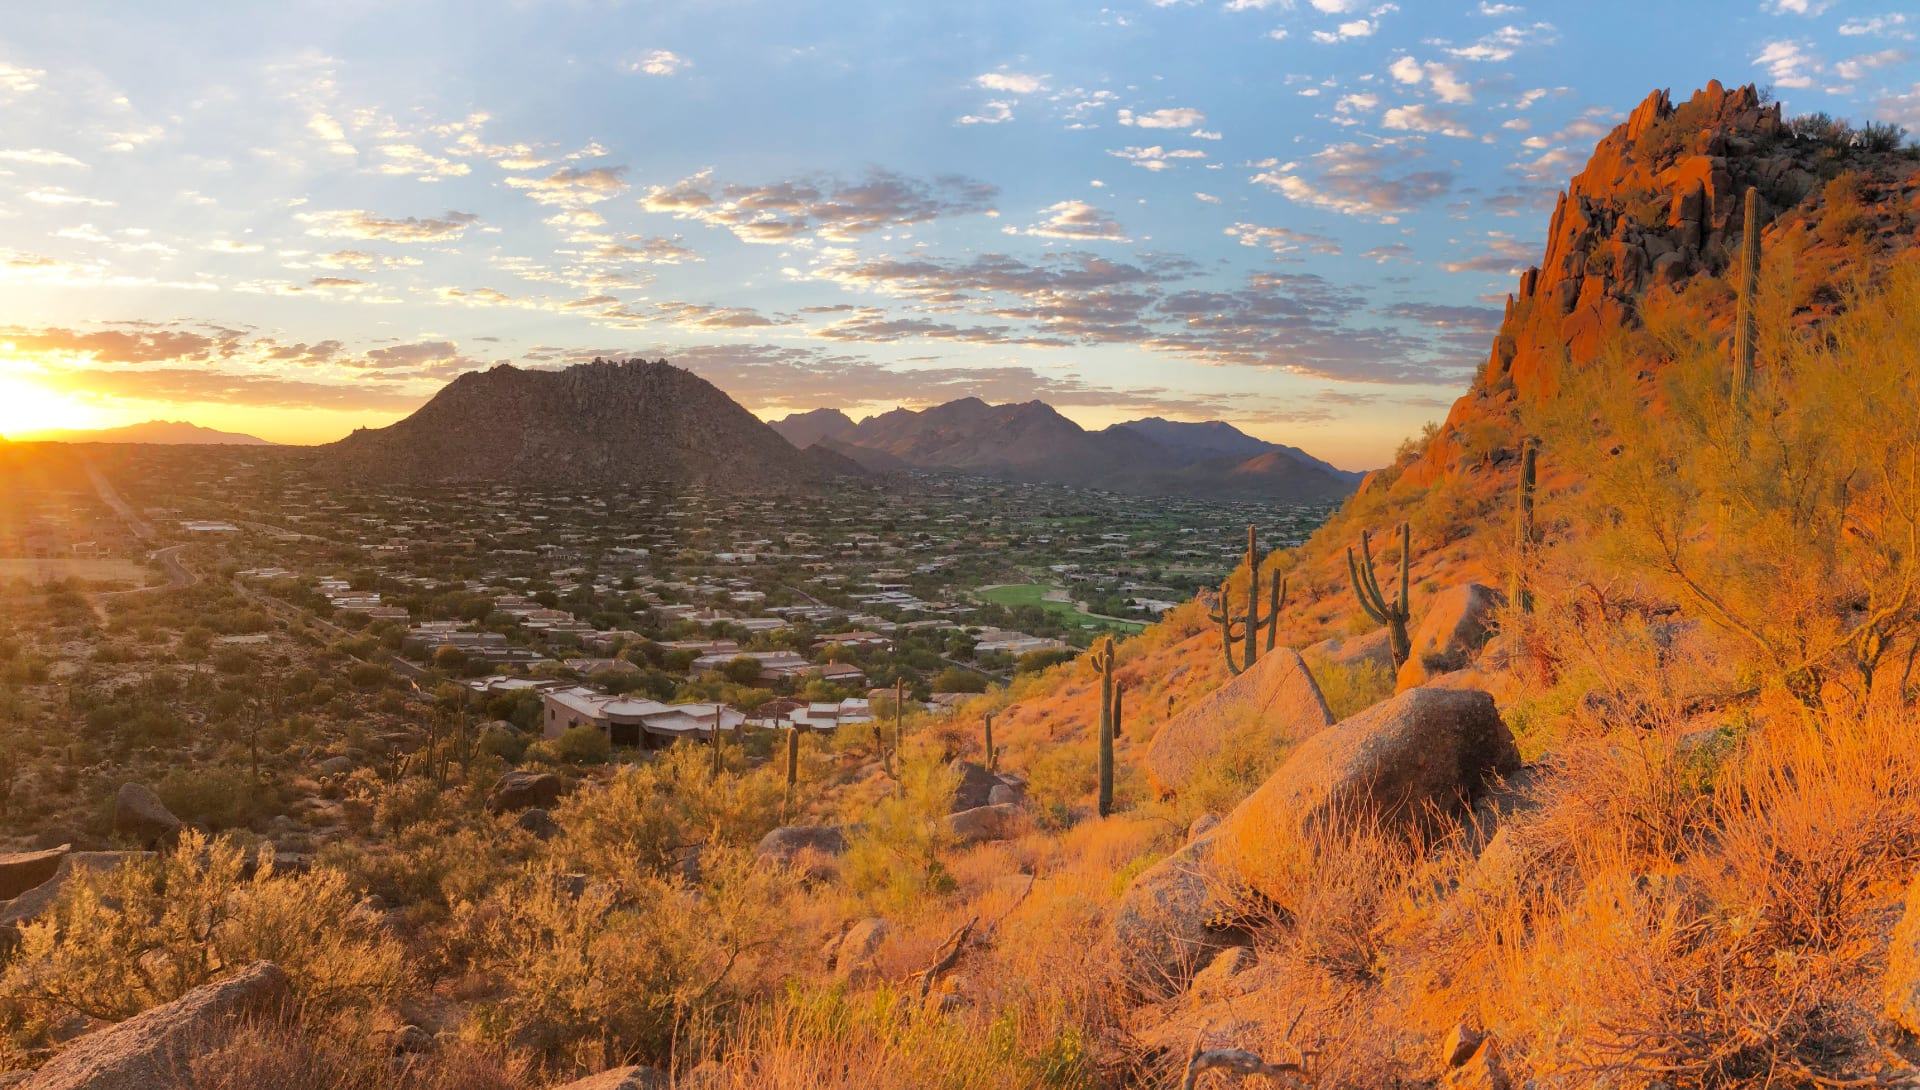 These Are the Top Things to See and Do in Scottsdale